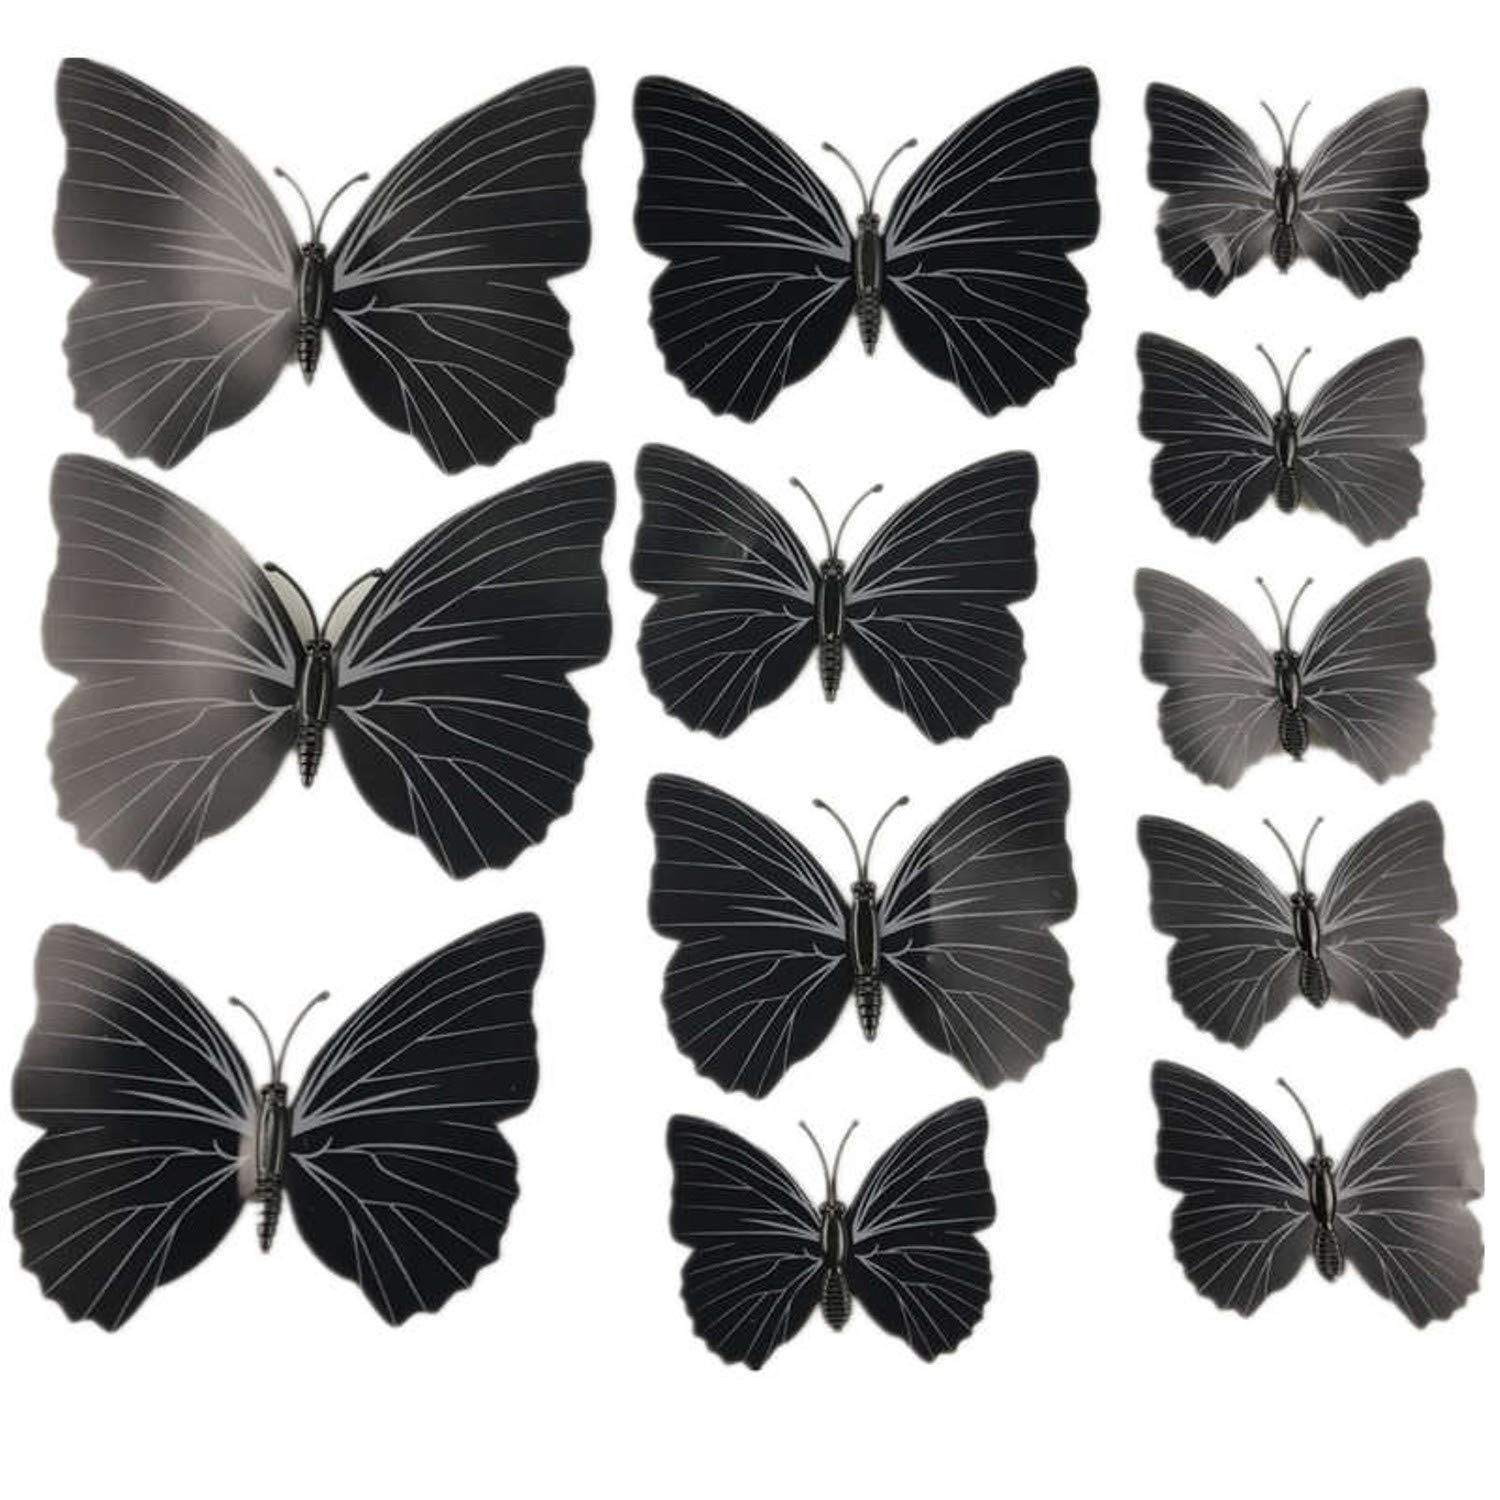 Amazon.com: Chitop (12 Pcs/Lot PVC 3D Magnet Butterfly Wall Stickers - Butterflies Decors for Wedding Party - Home Kitchen Fridge Decoration (Black): Home & ...